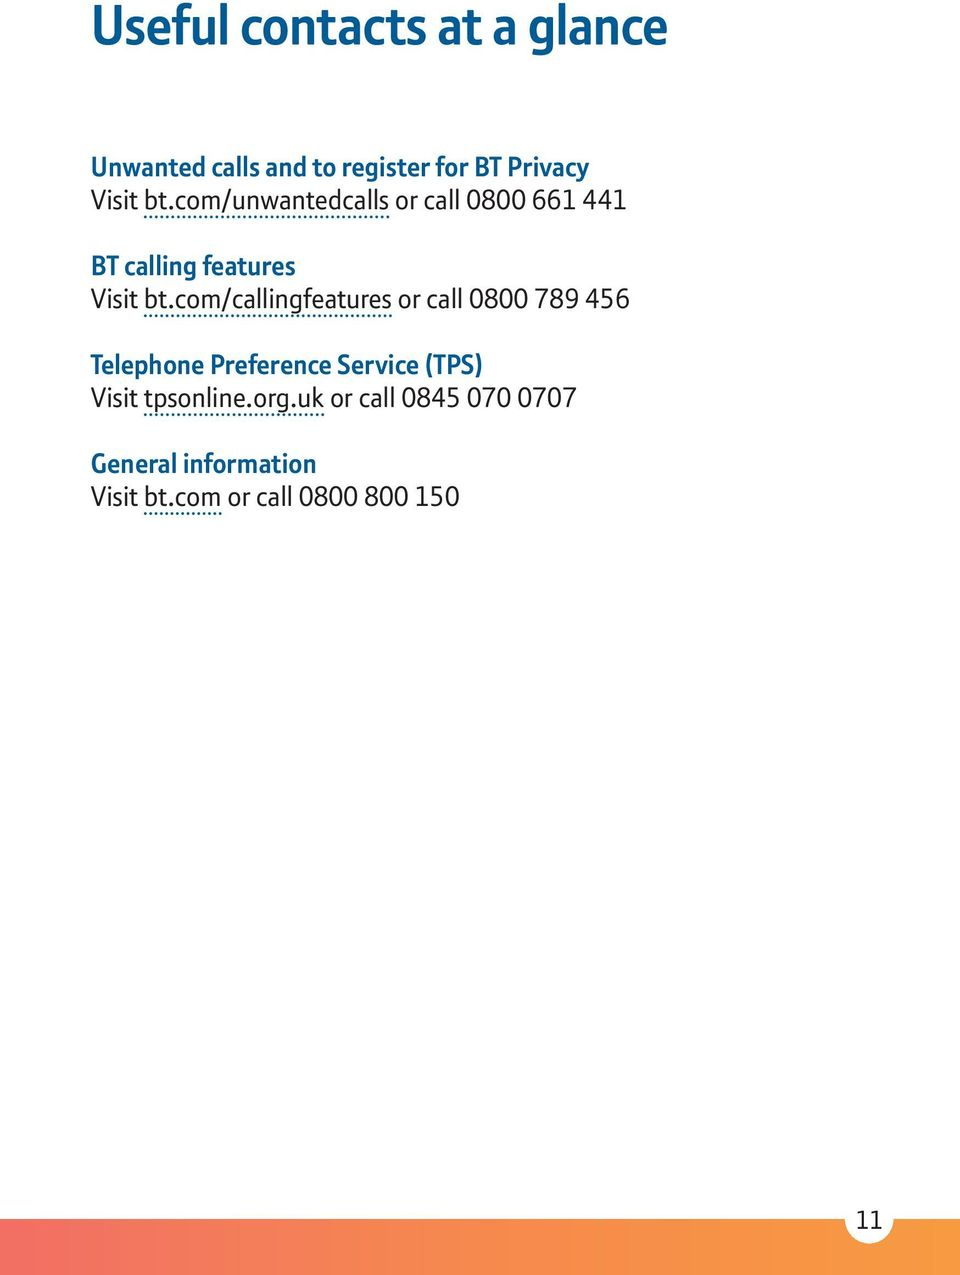 com/callingfeatures or call 0800 789 456 Telephone Preference Service (TPS) Visit